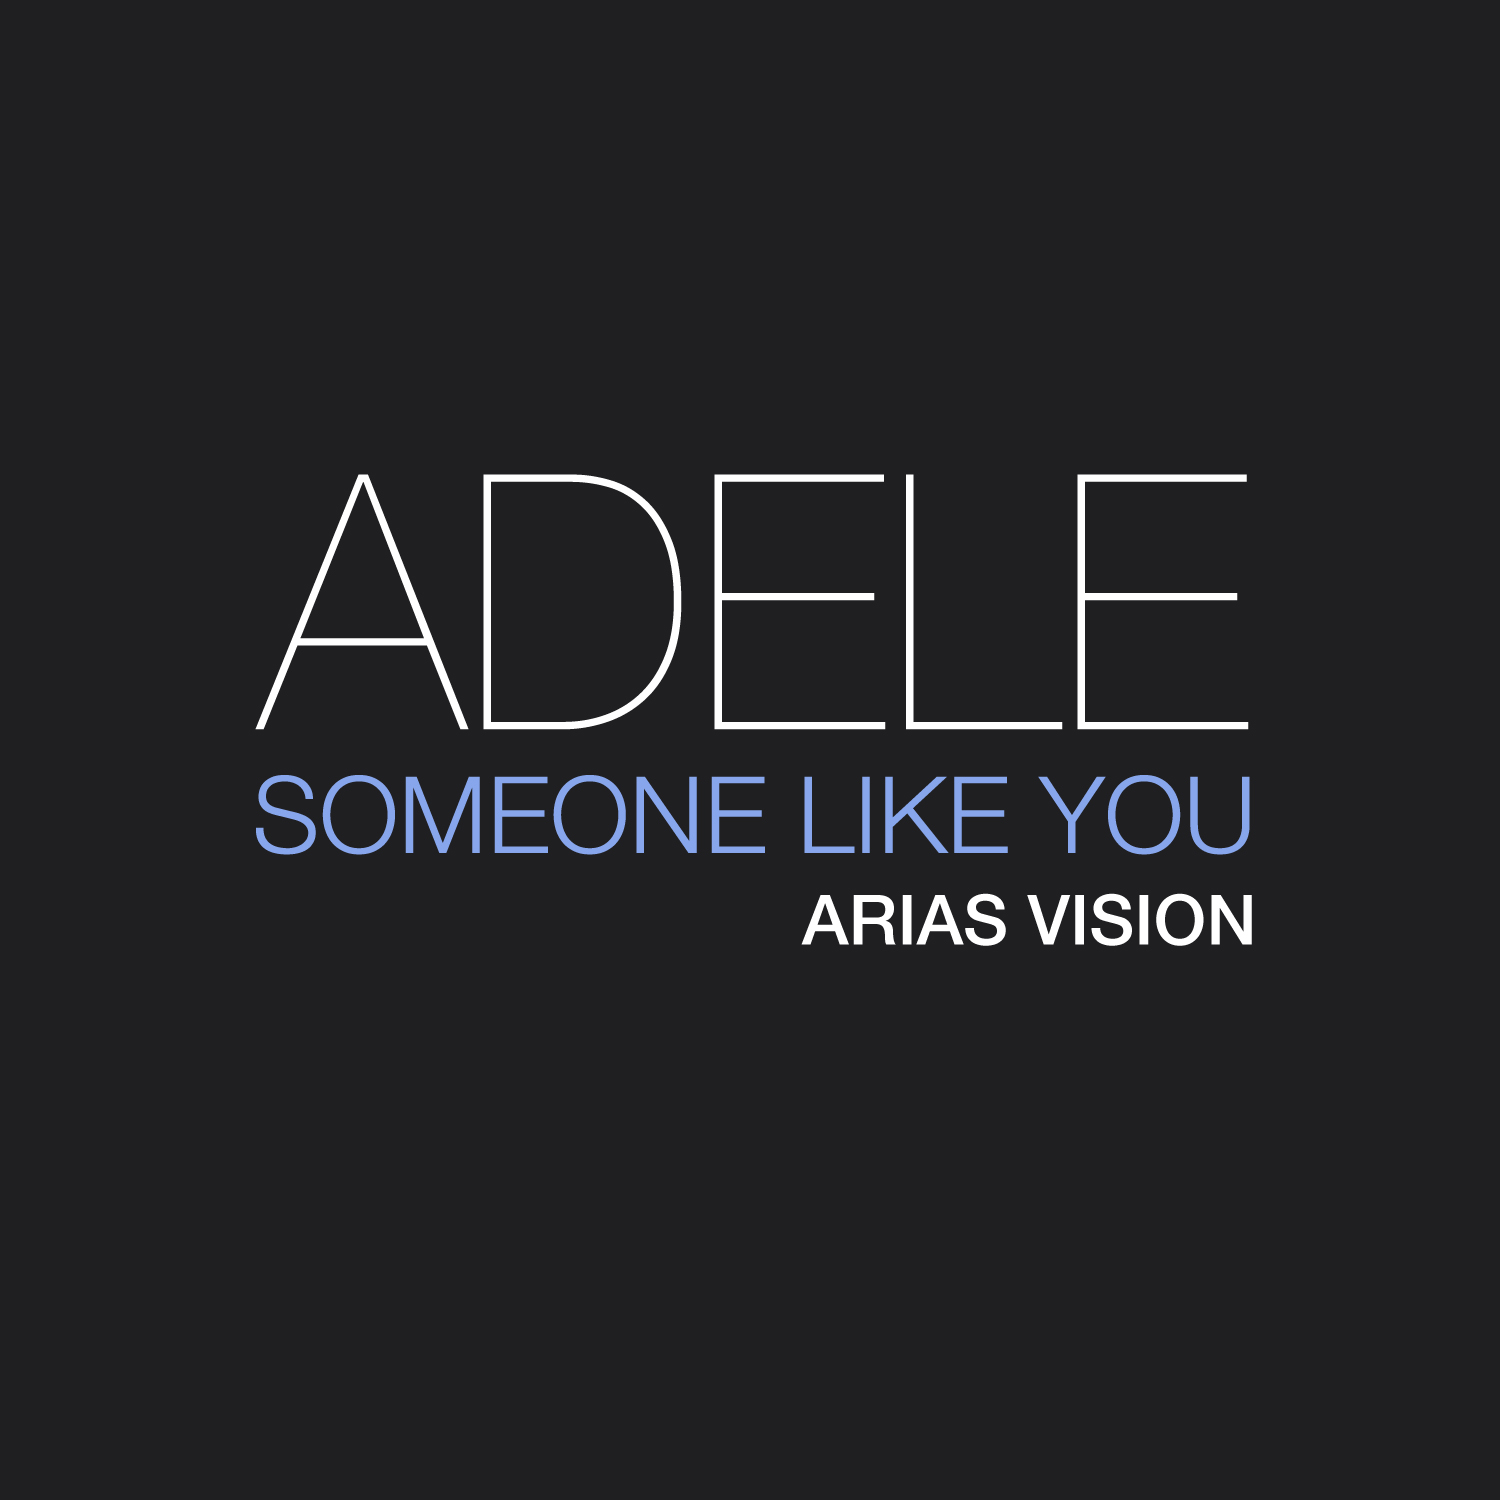 Girls Like You Mp3 Song Free Download: Adele - Someone Like You Shared Mp3